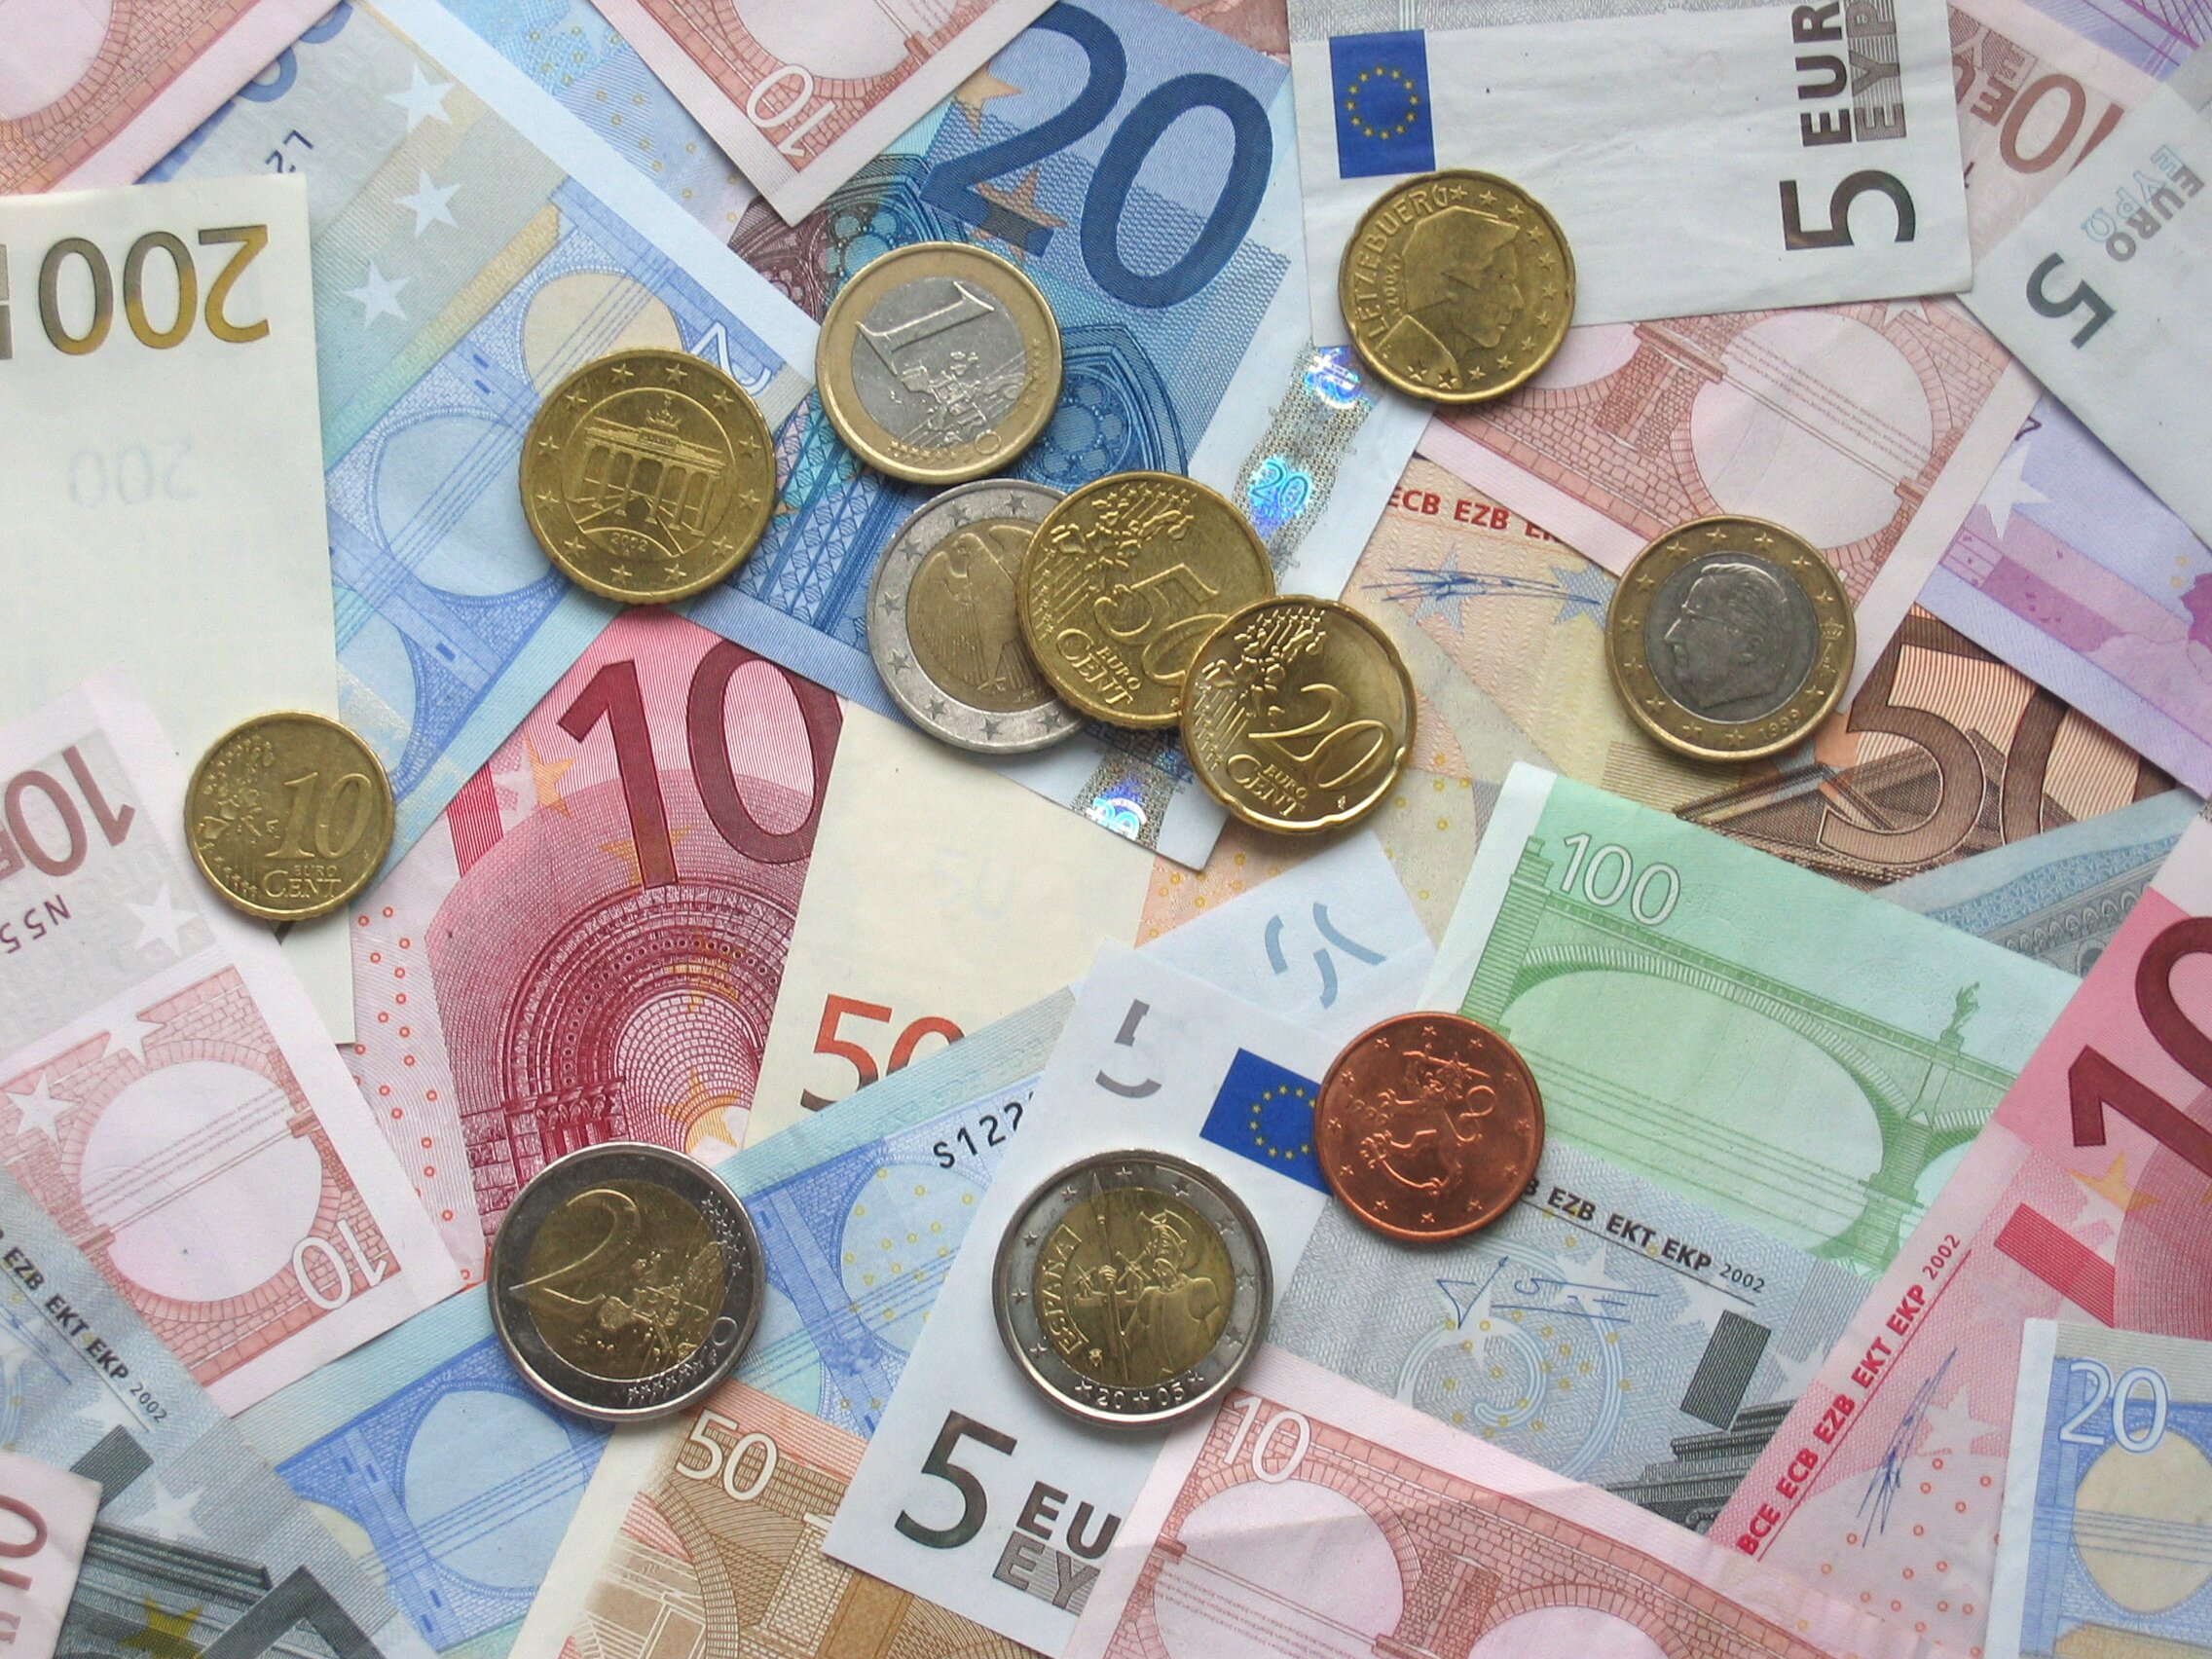 Hungarians working abroad send home less money